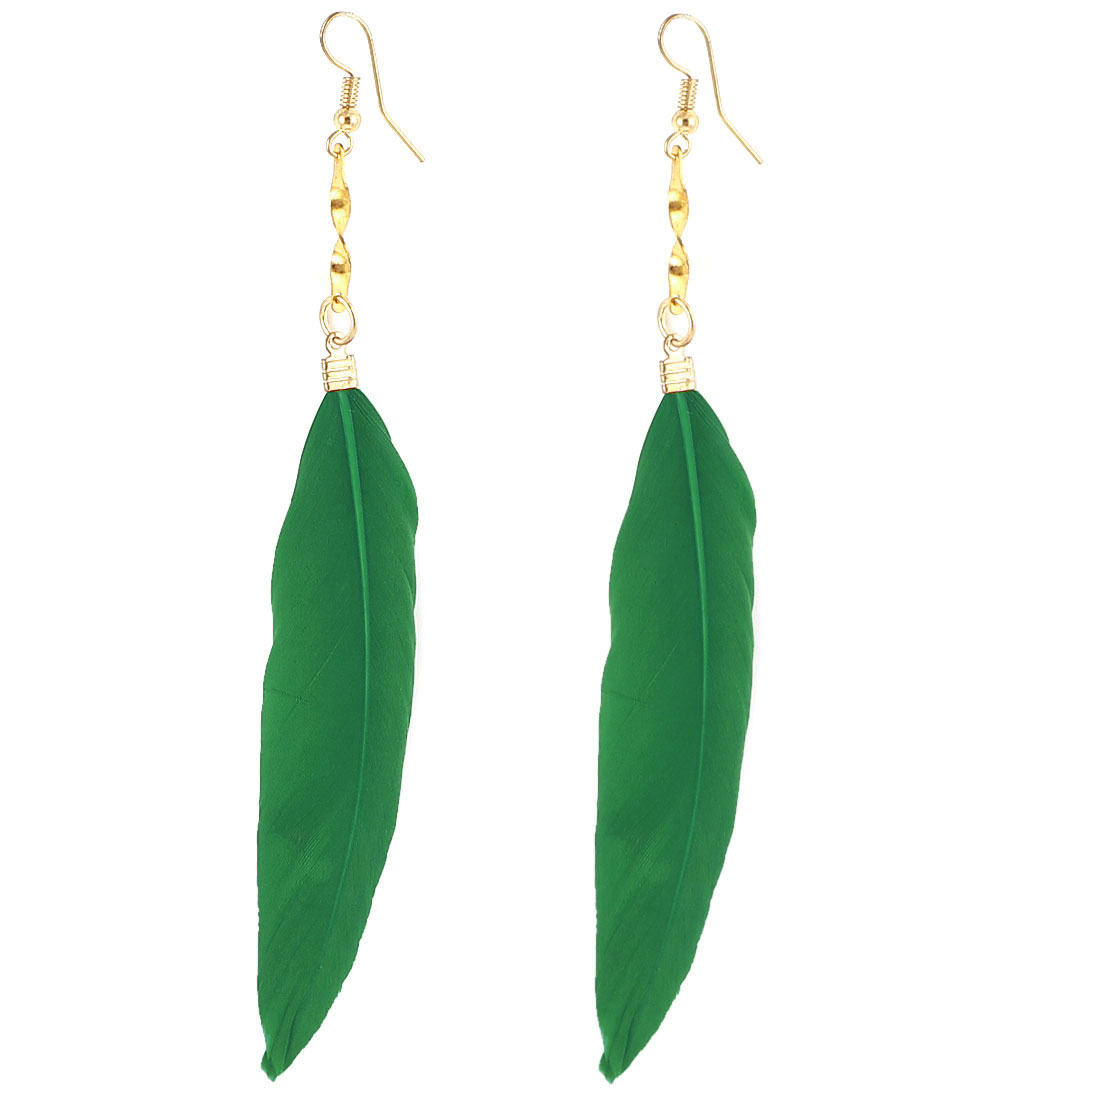 Lady Faux Feather Pendant Fish Hook Dangle Earrings Eardrop 2 Pcs Green